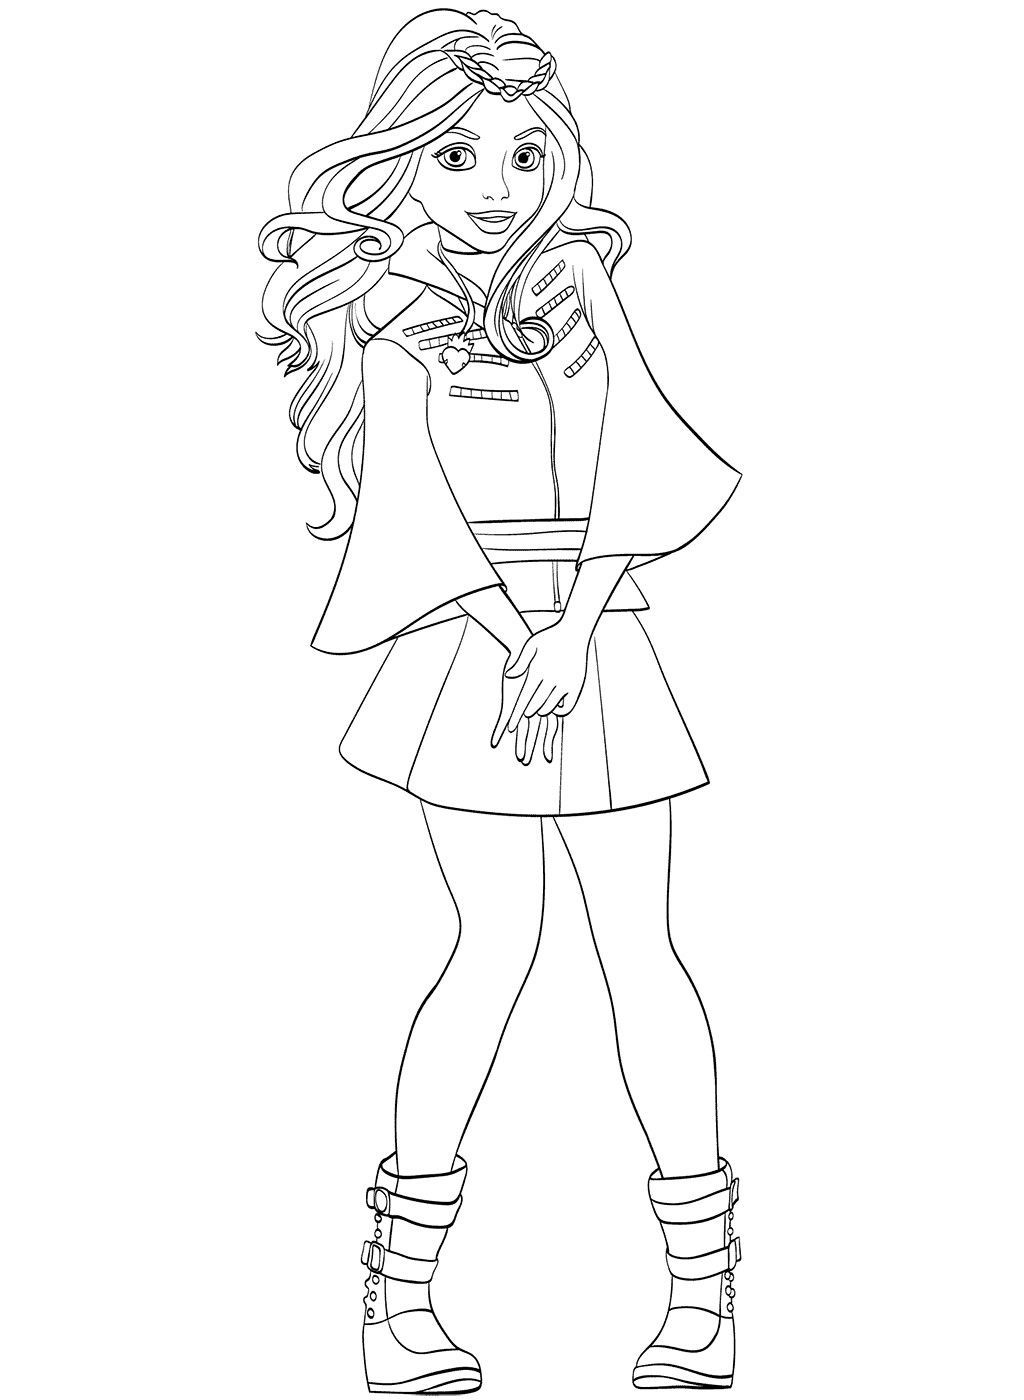 Descendant Coloring Pages PDF Ideas with Superstar Casts